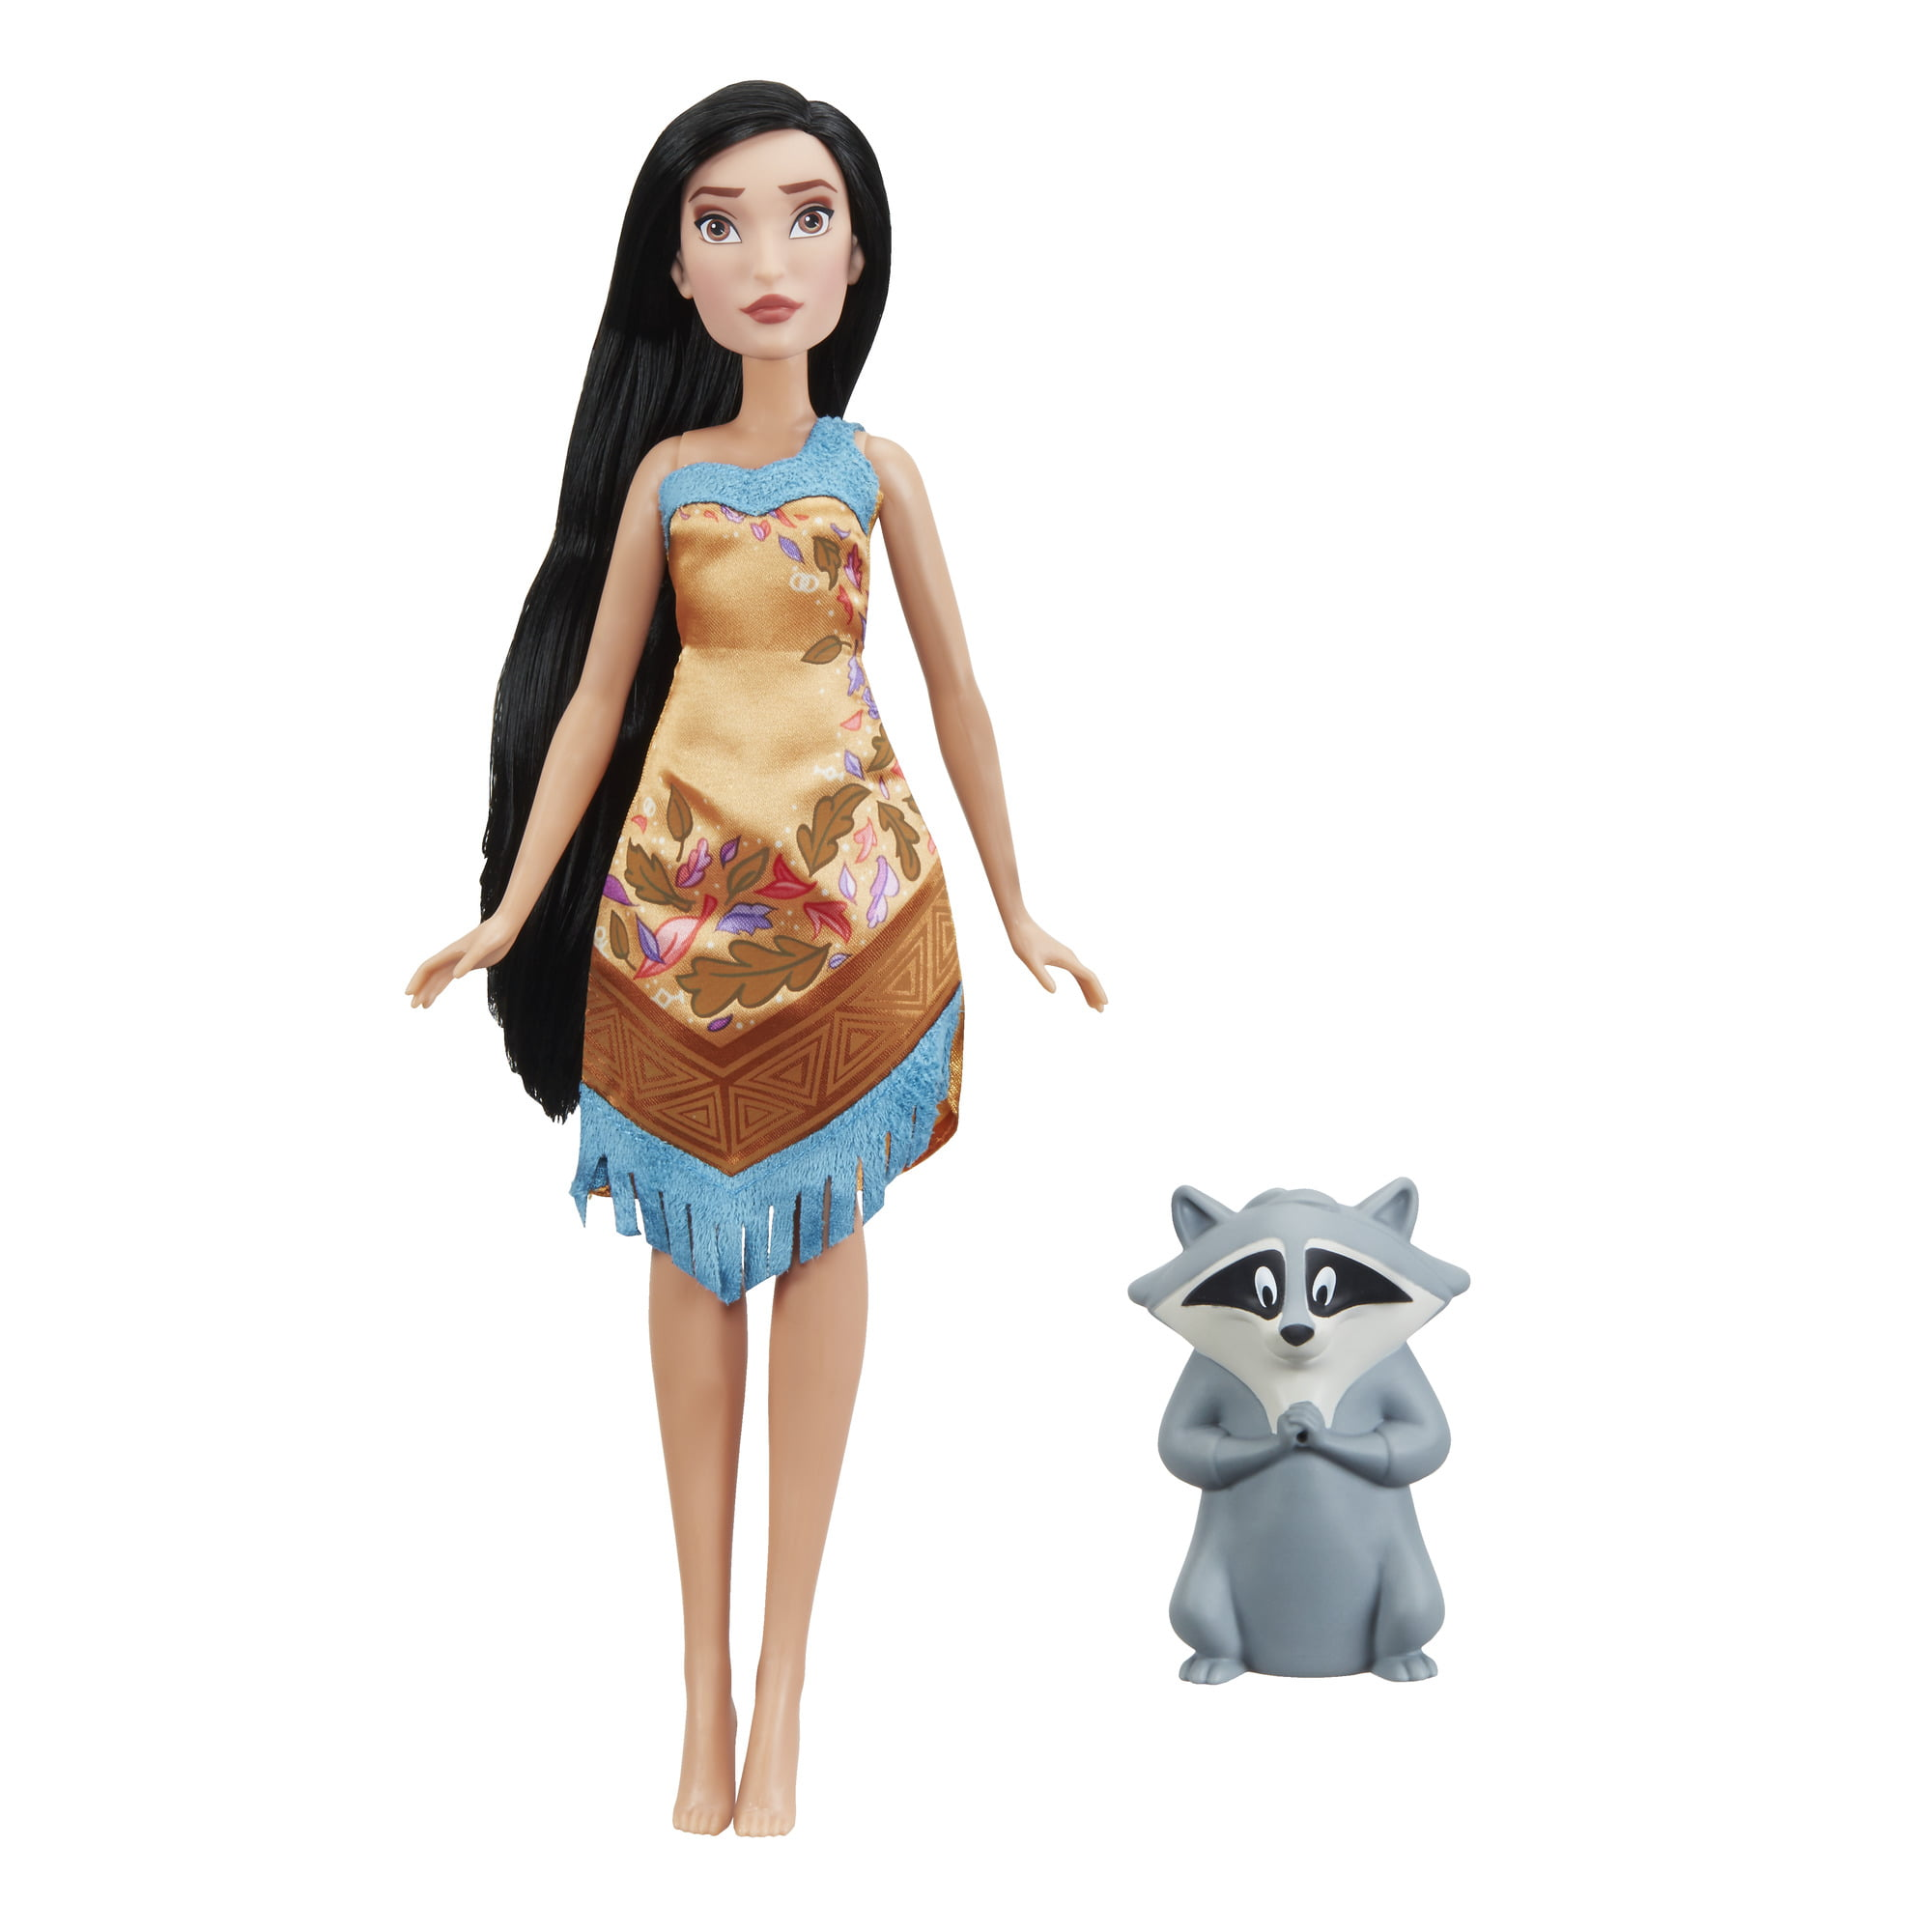 Disney Princess Forest Colors Reveal Pocahontas Doll by Hasbro Inc.